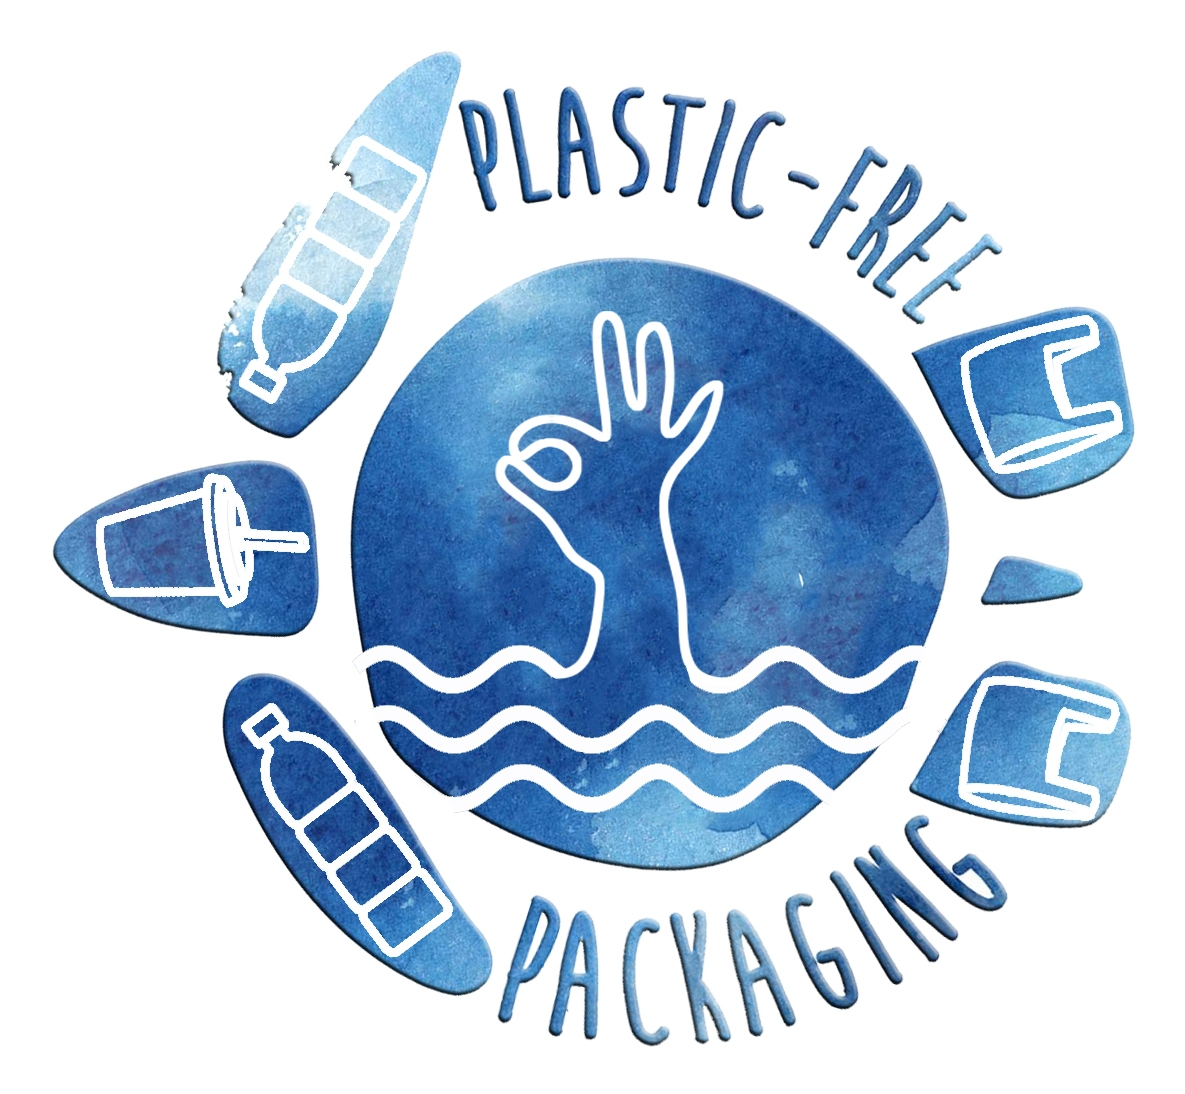 Scuba Gifts Plastic Free Packaging